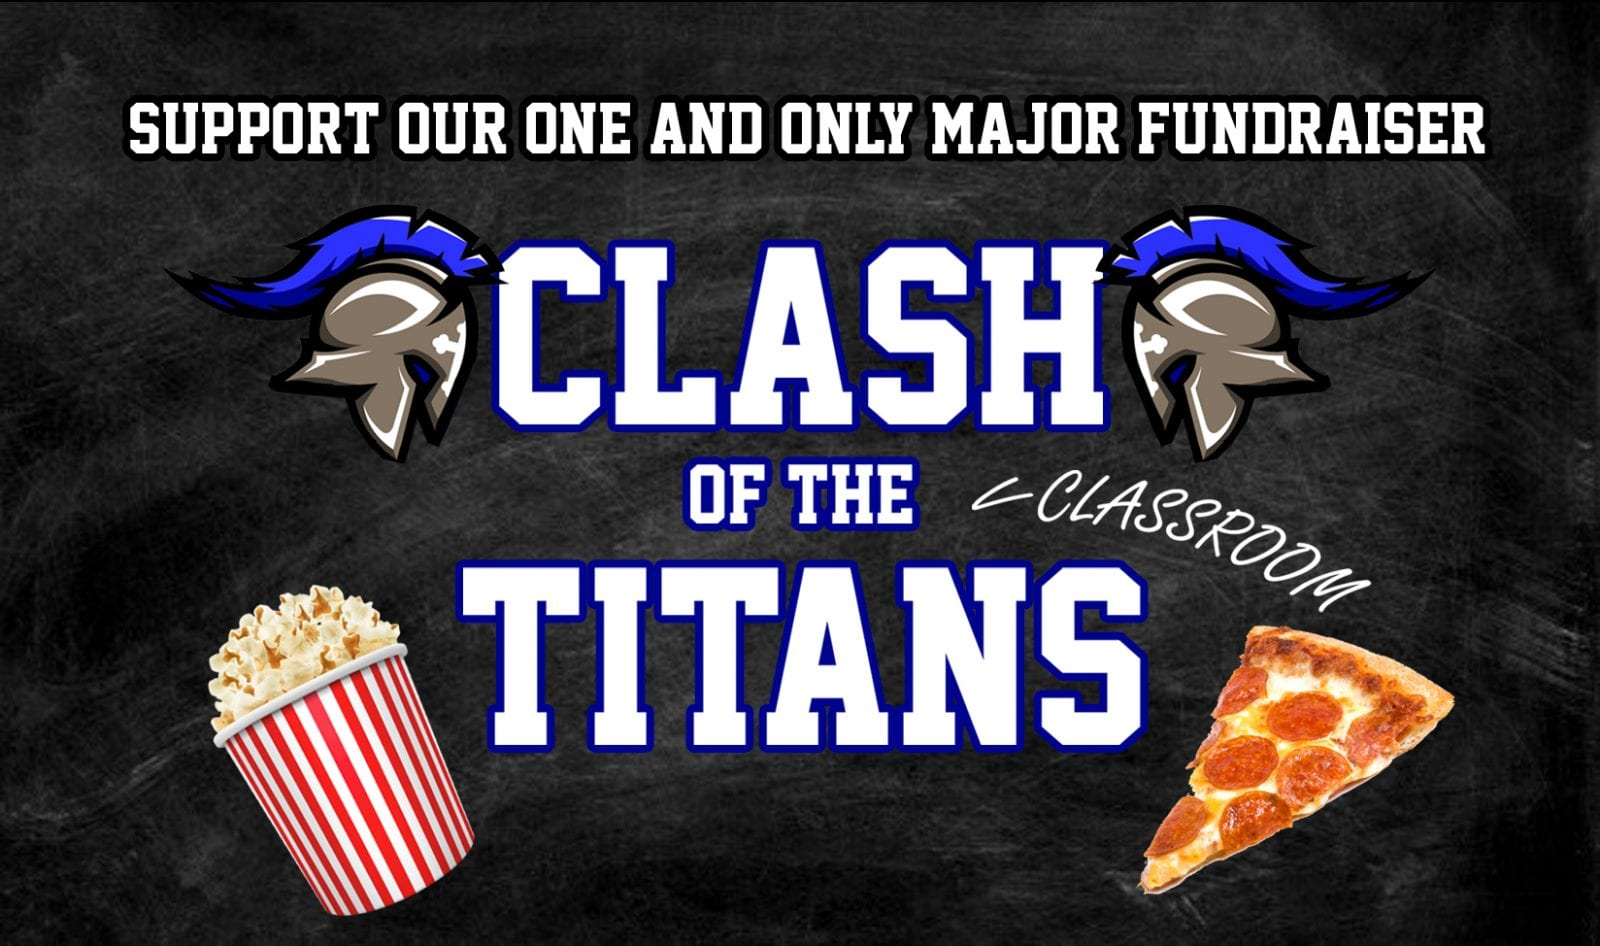 Today is the LAST DAY to donate. Please support our school.